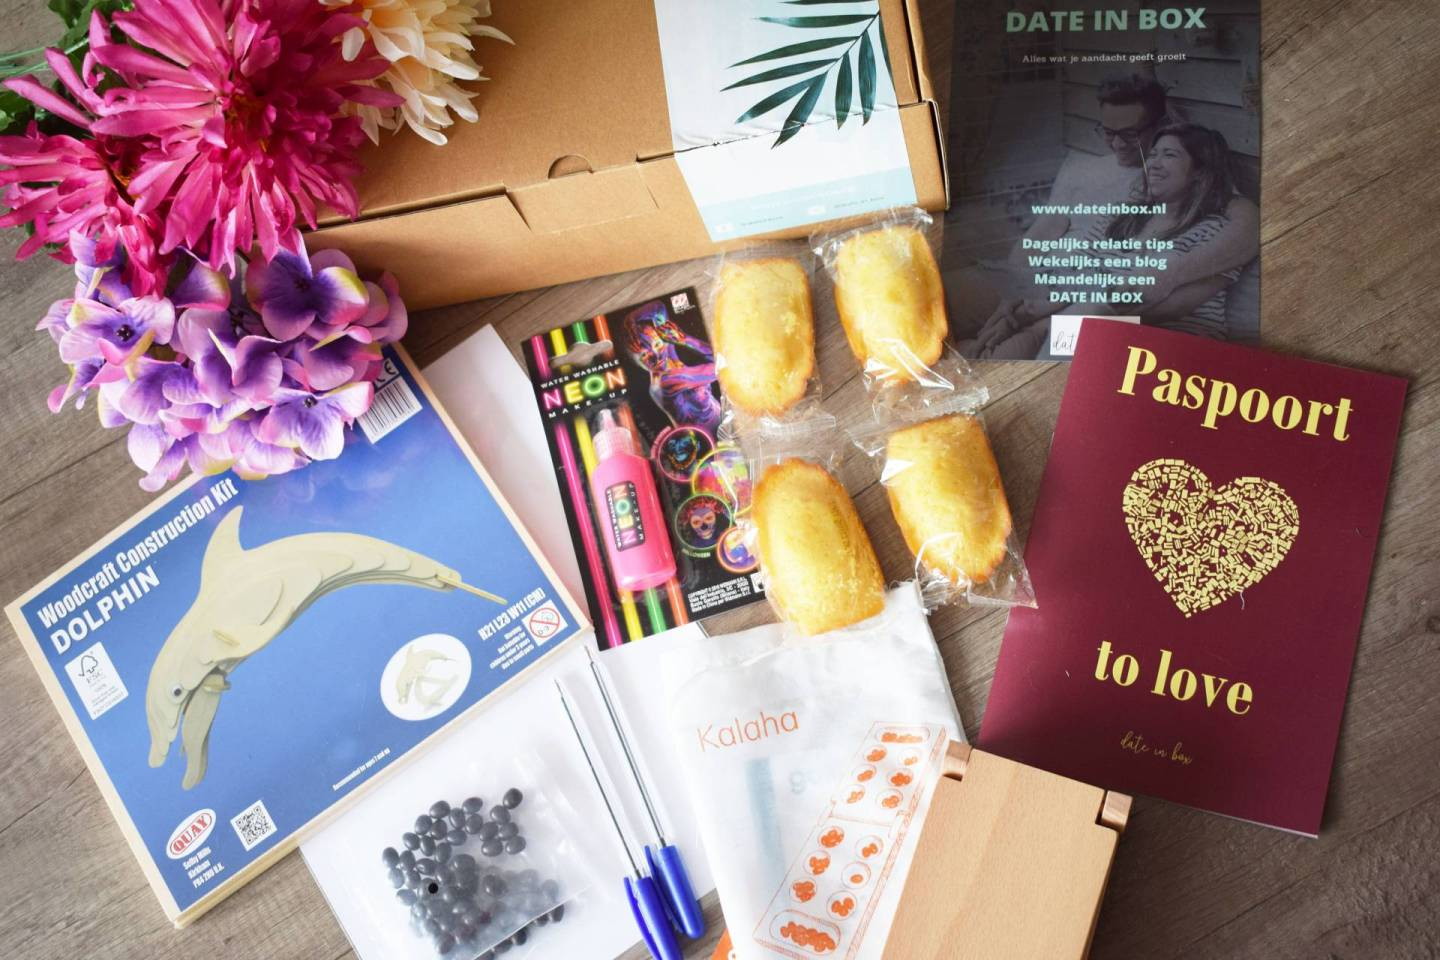 Unboxing | Date in Box -Paspoort to love